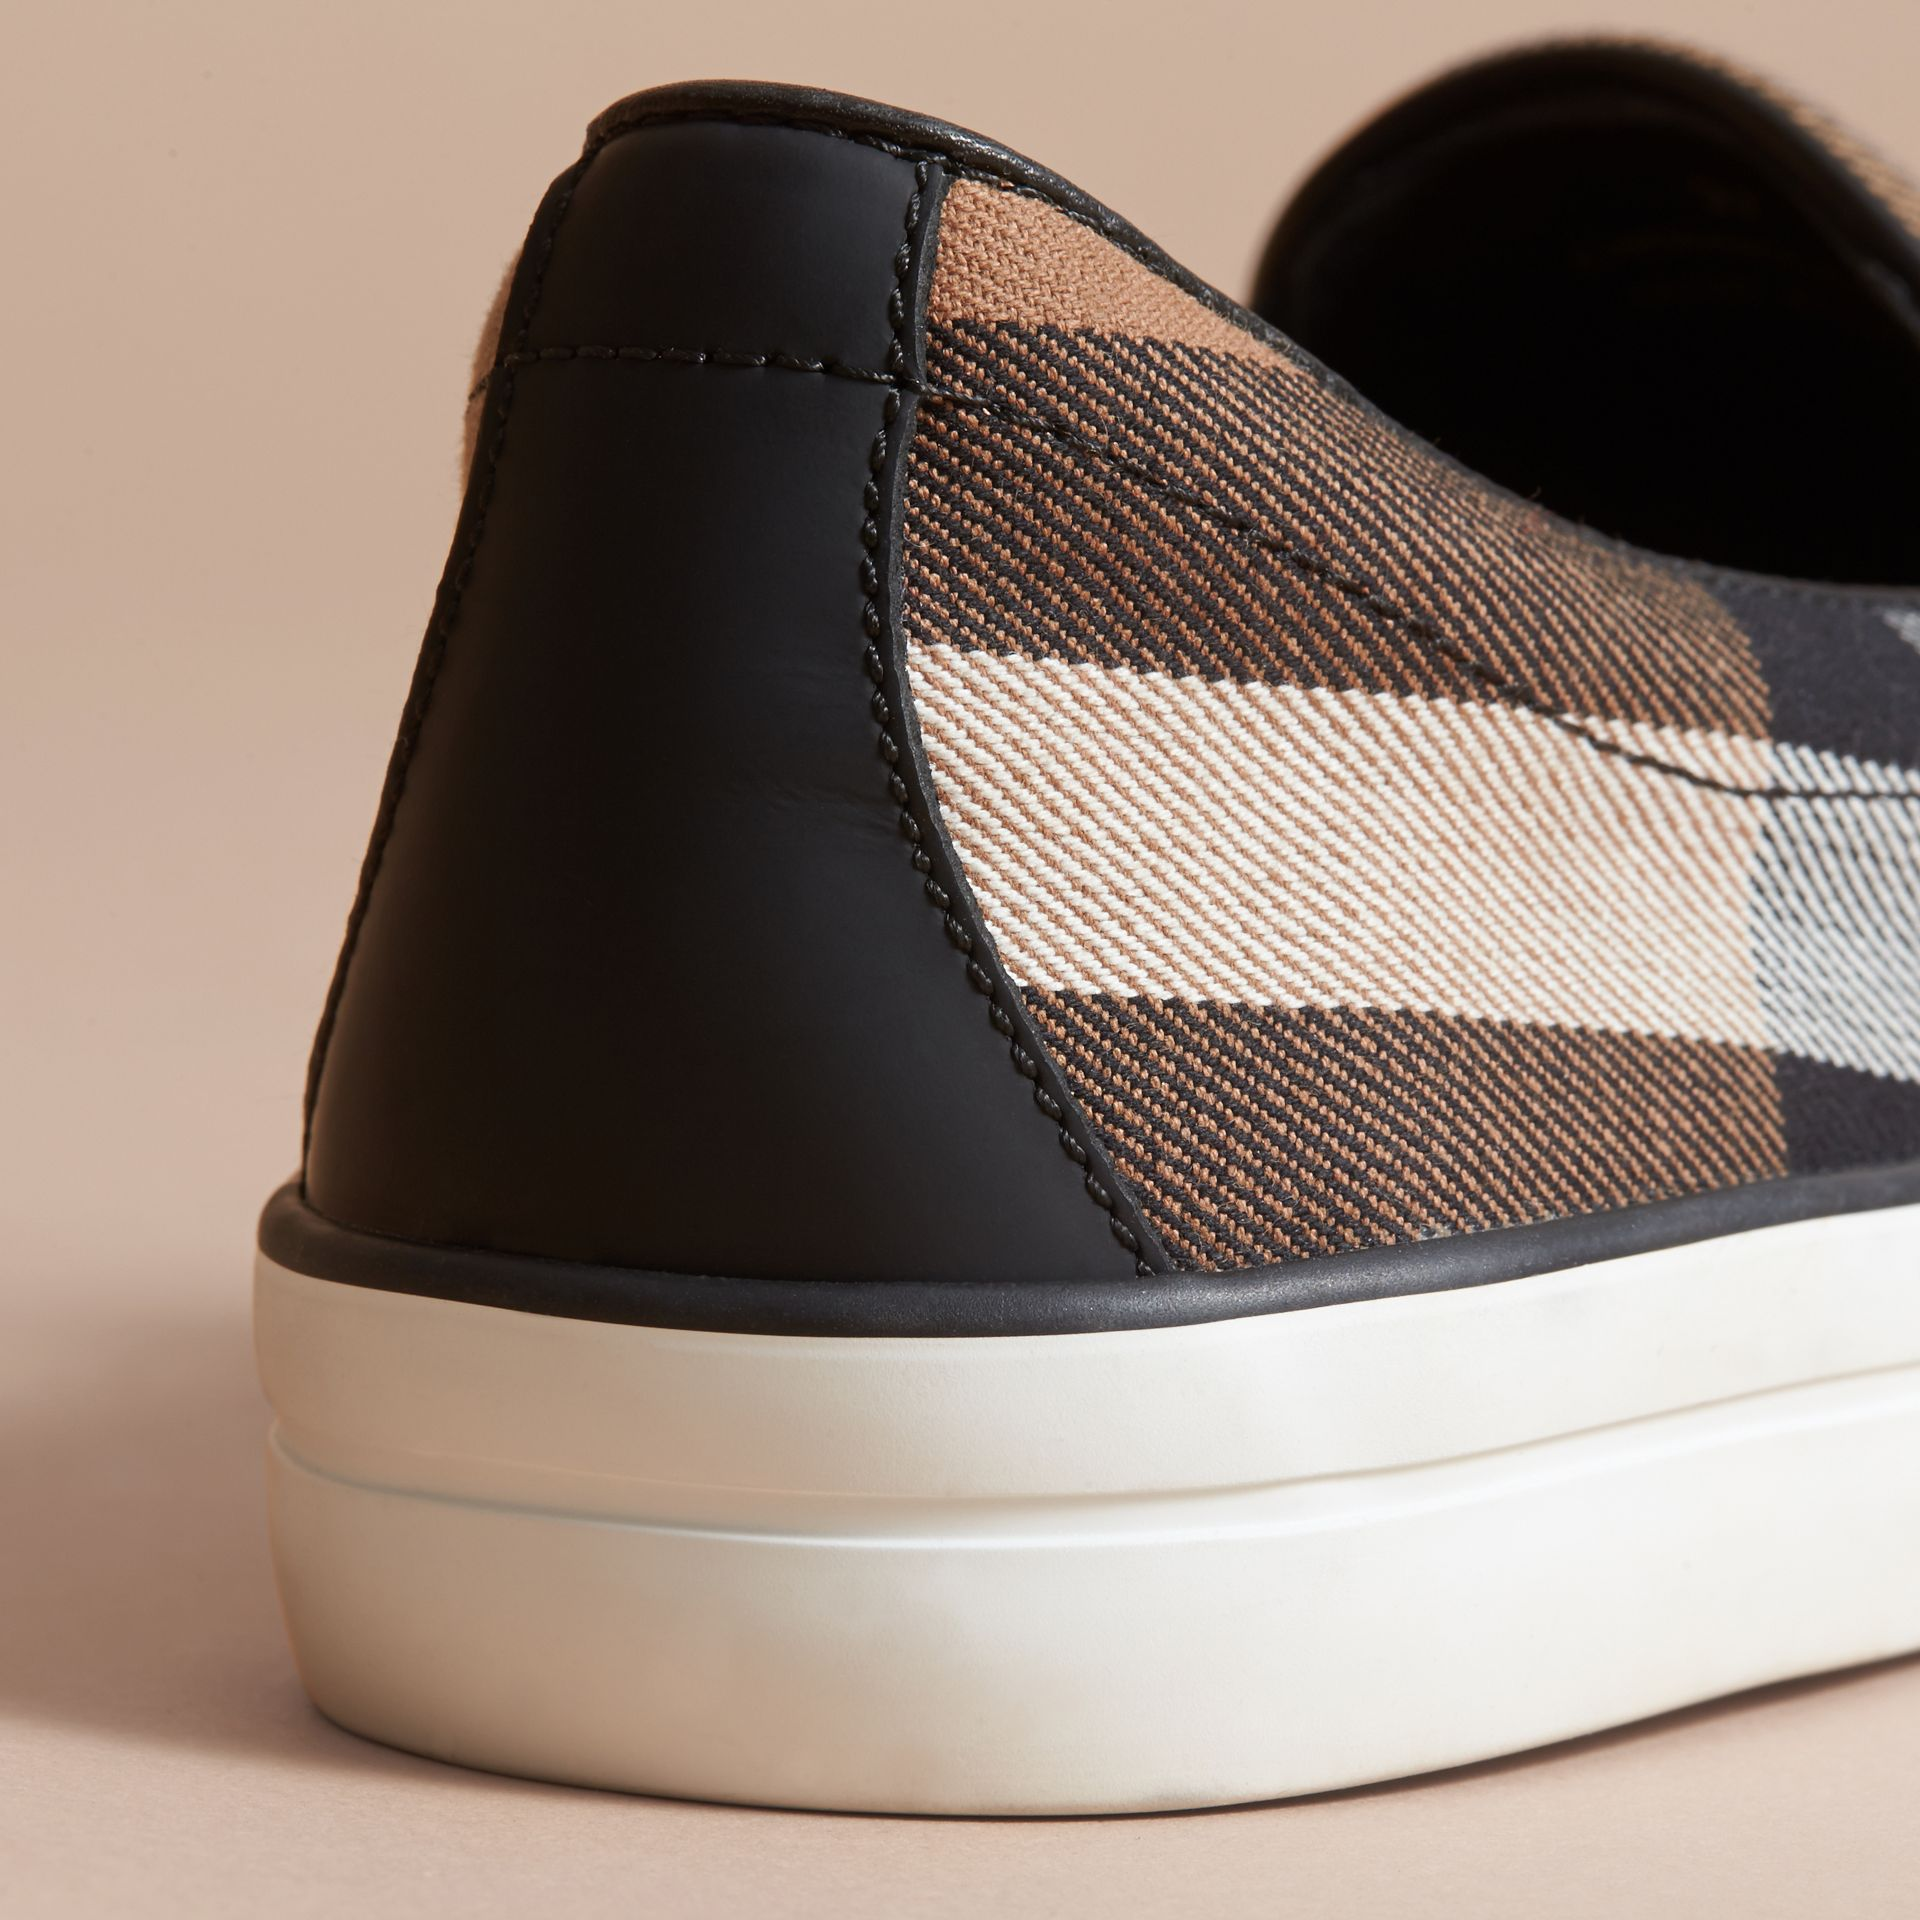 House Check and Leather Slip-on Sneakers in Classic - Women | Burberry United States - gallery image 4